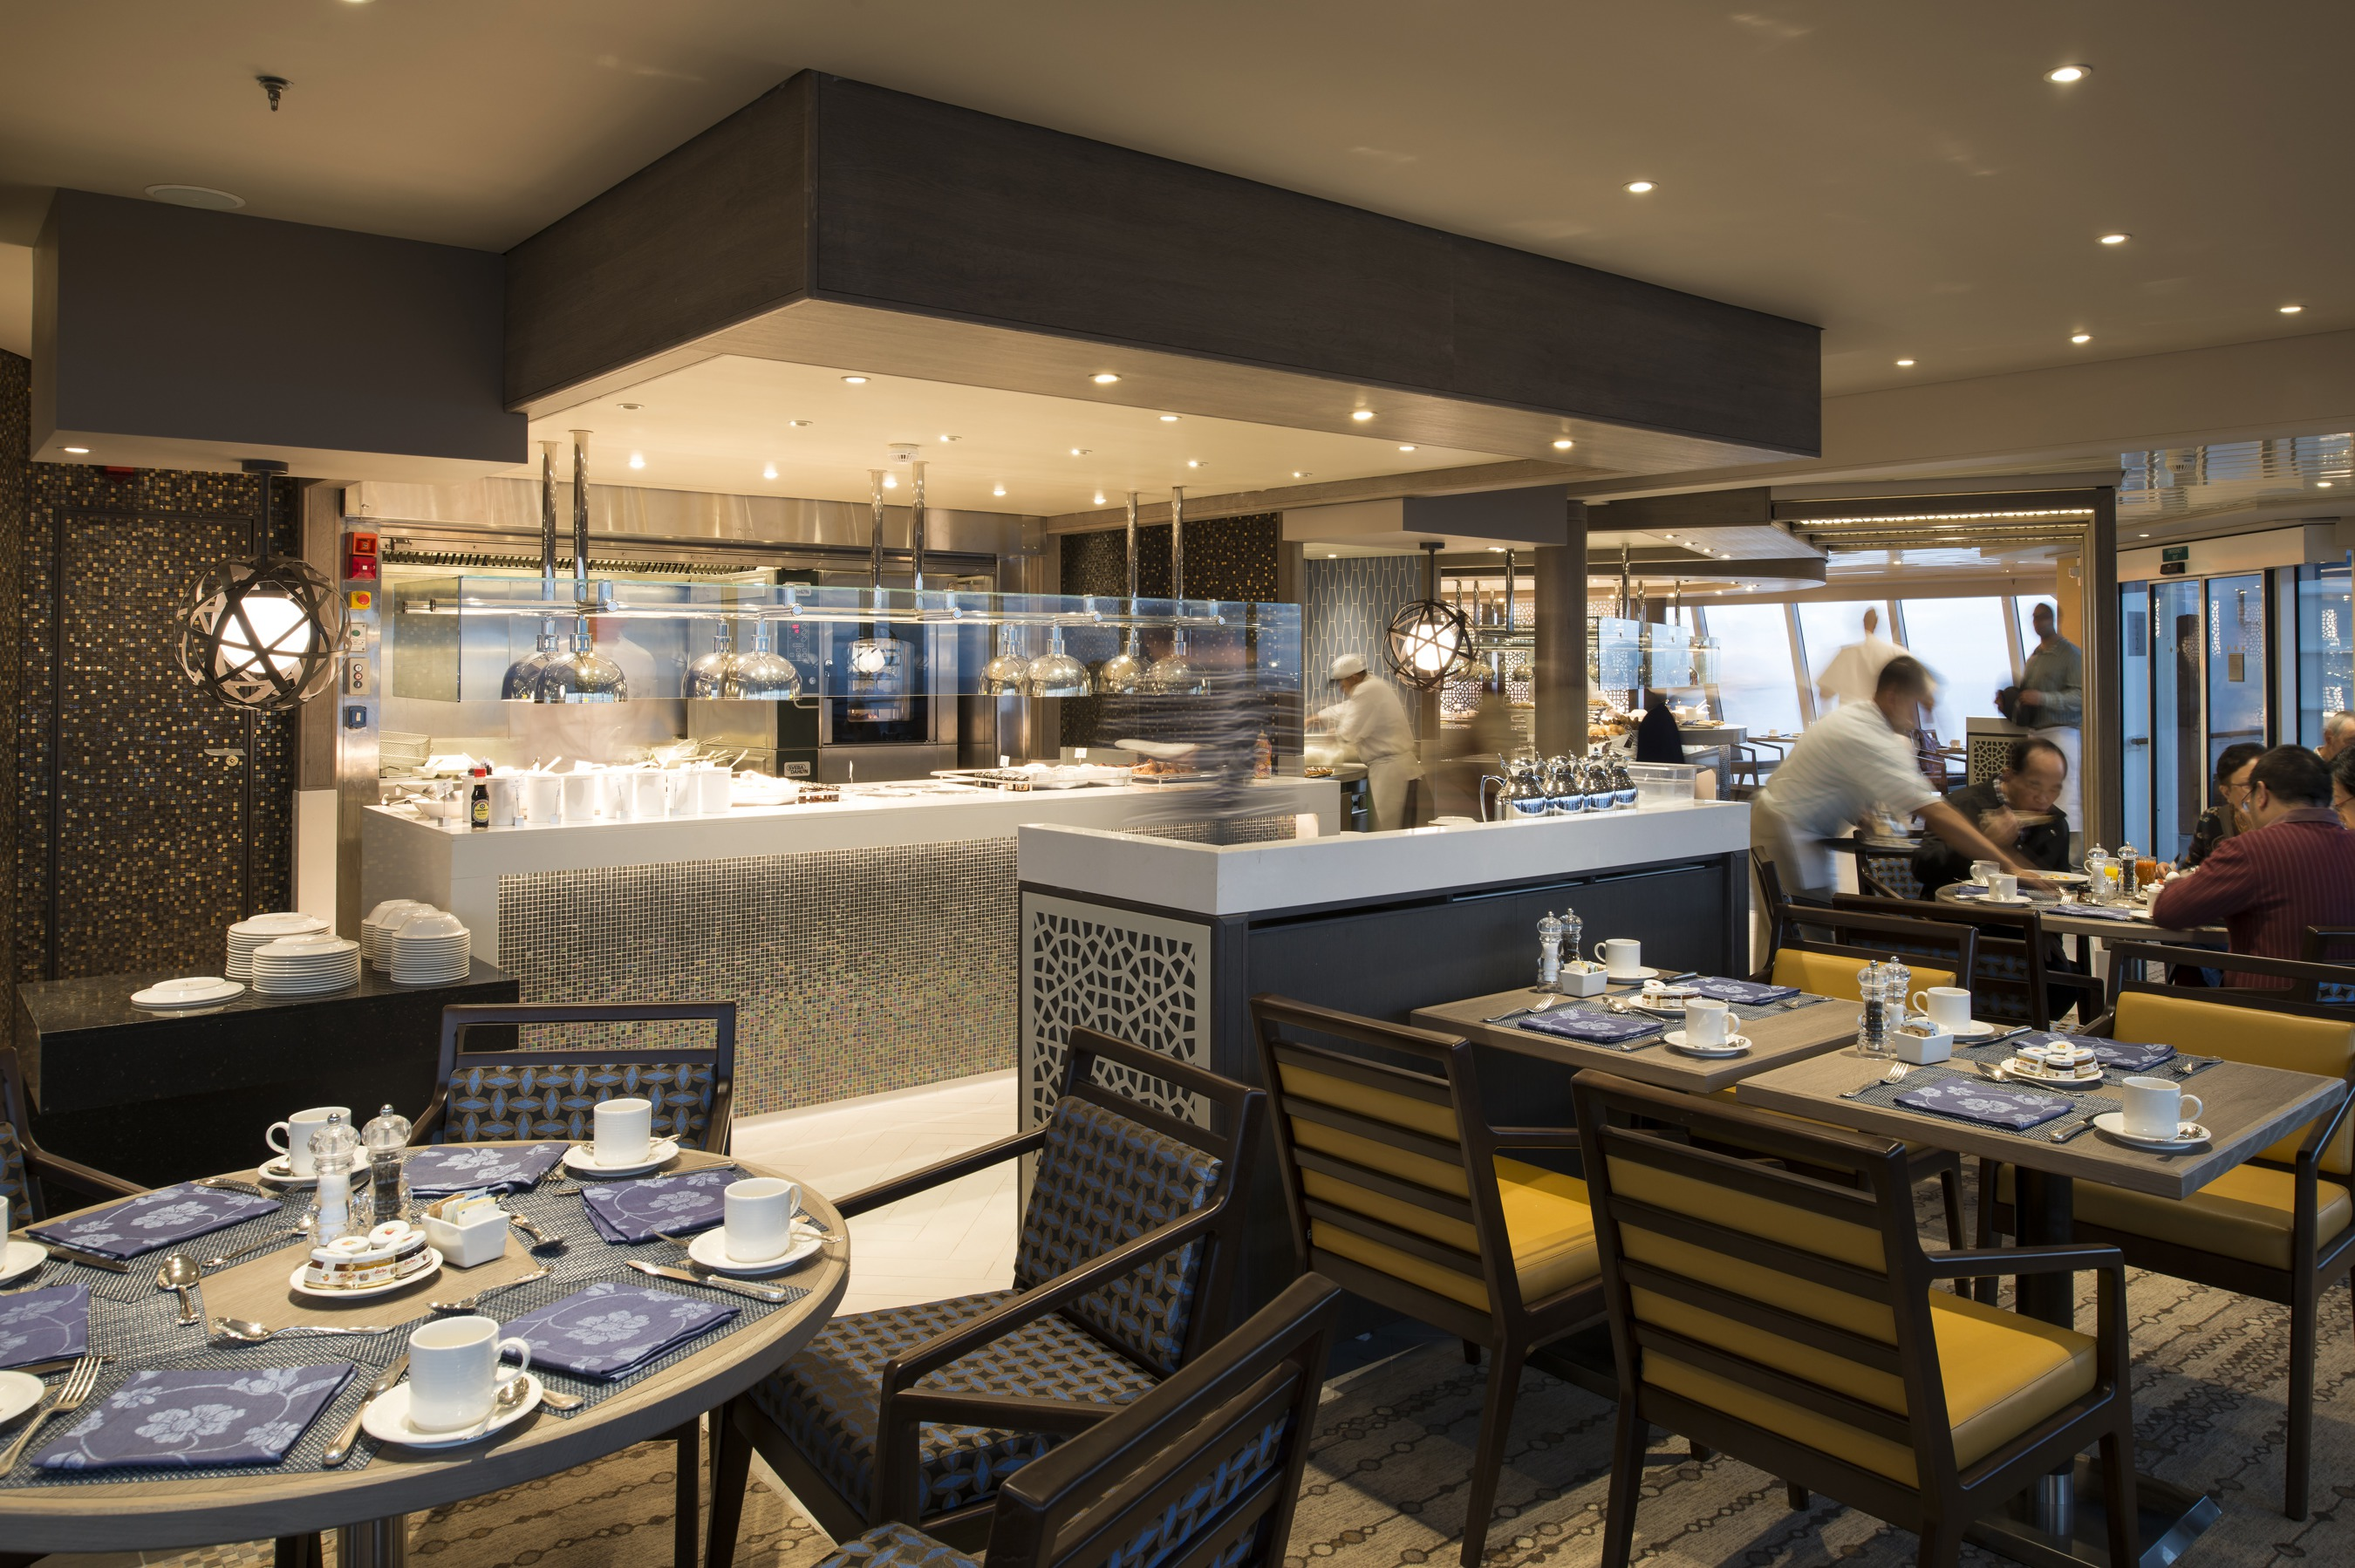 Crystal Cruises - Crystal Serenity Lido Cafe